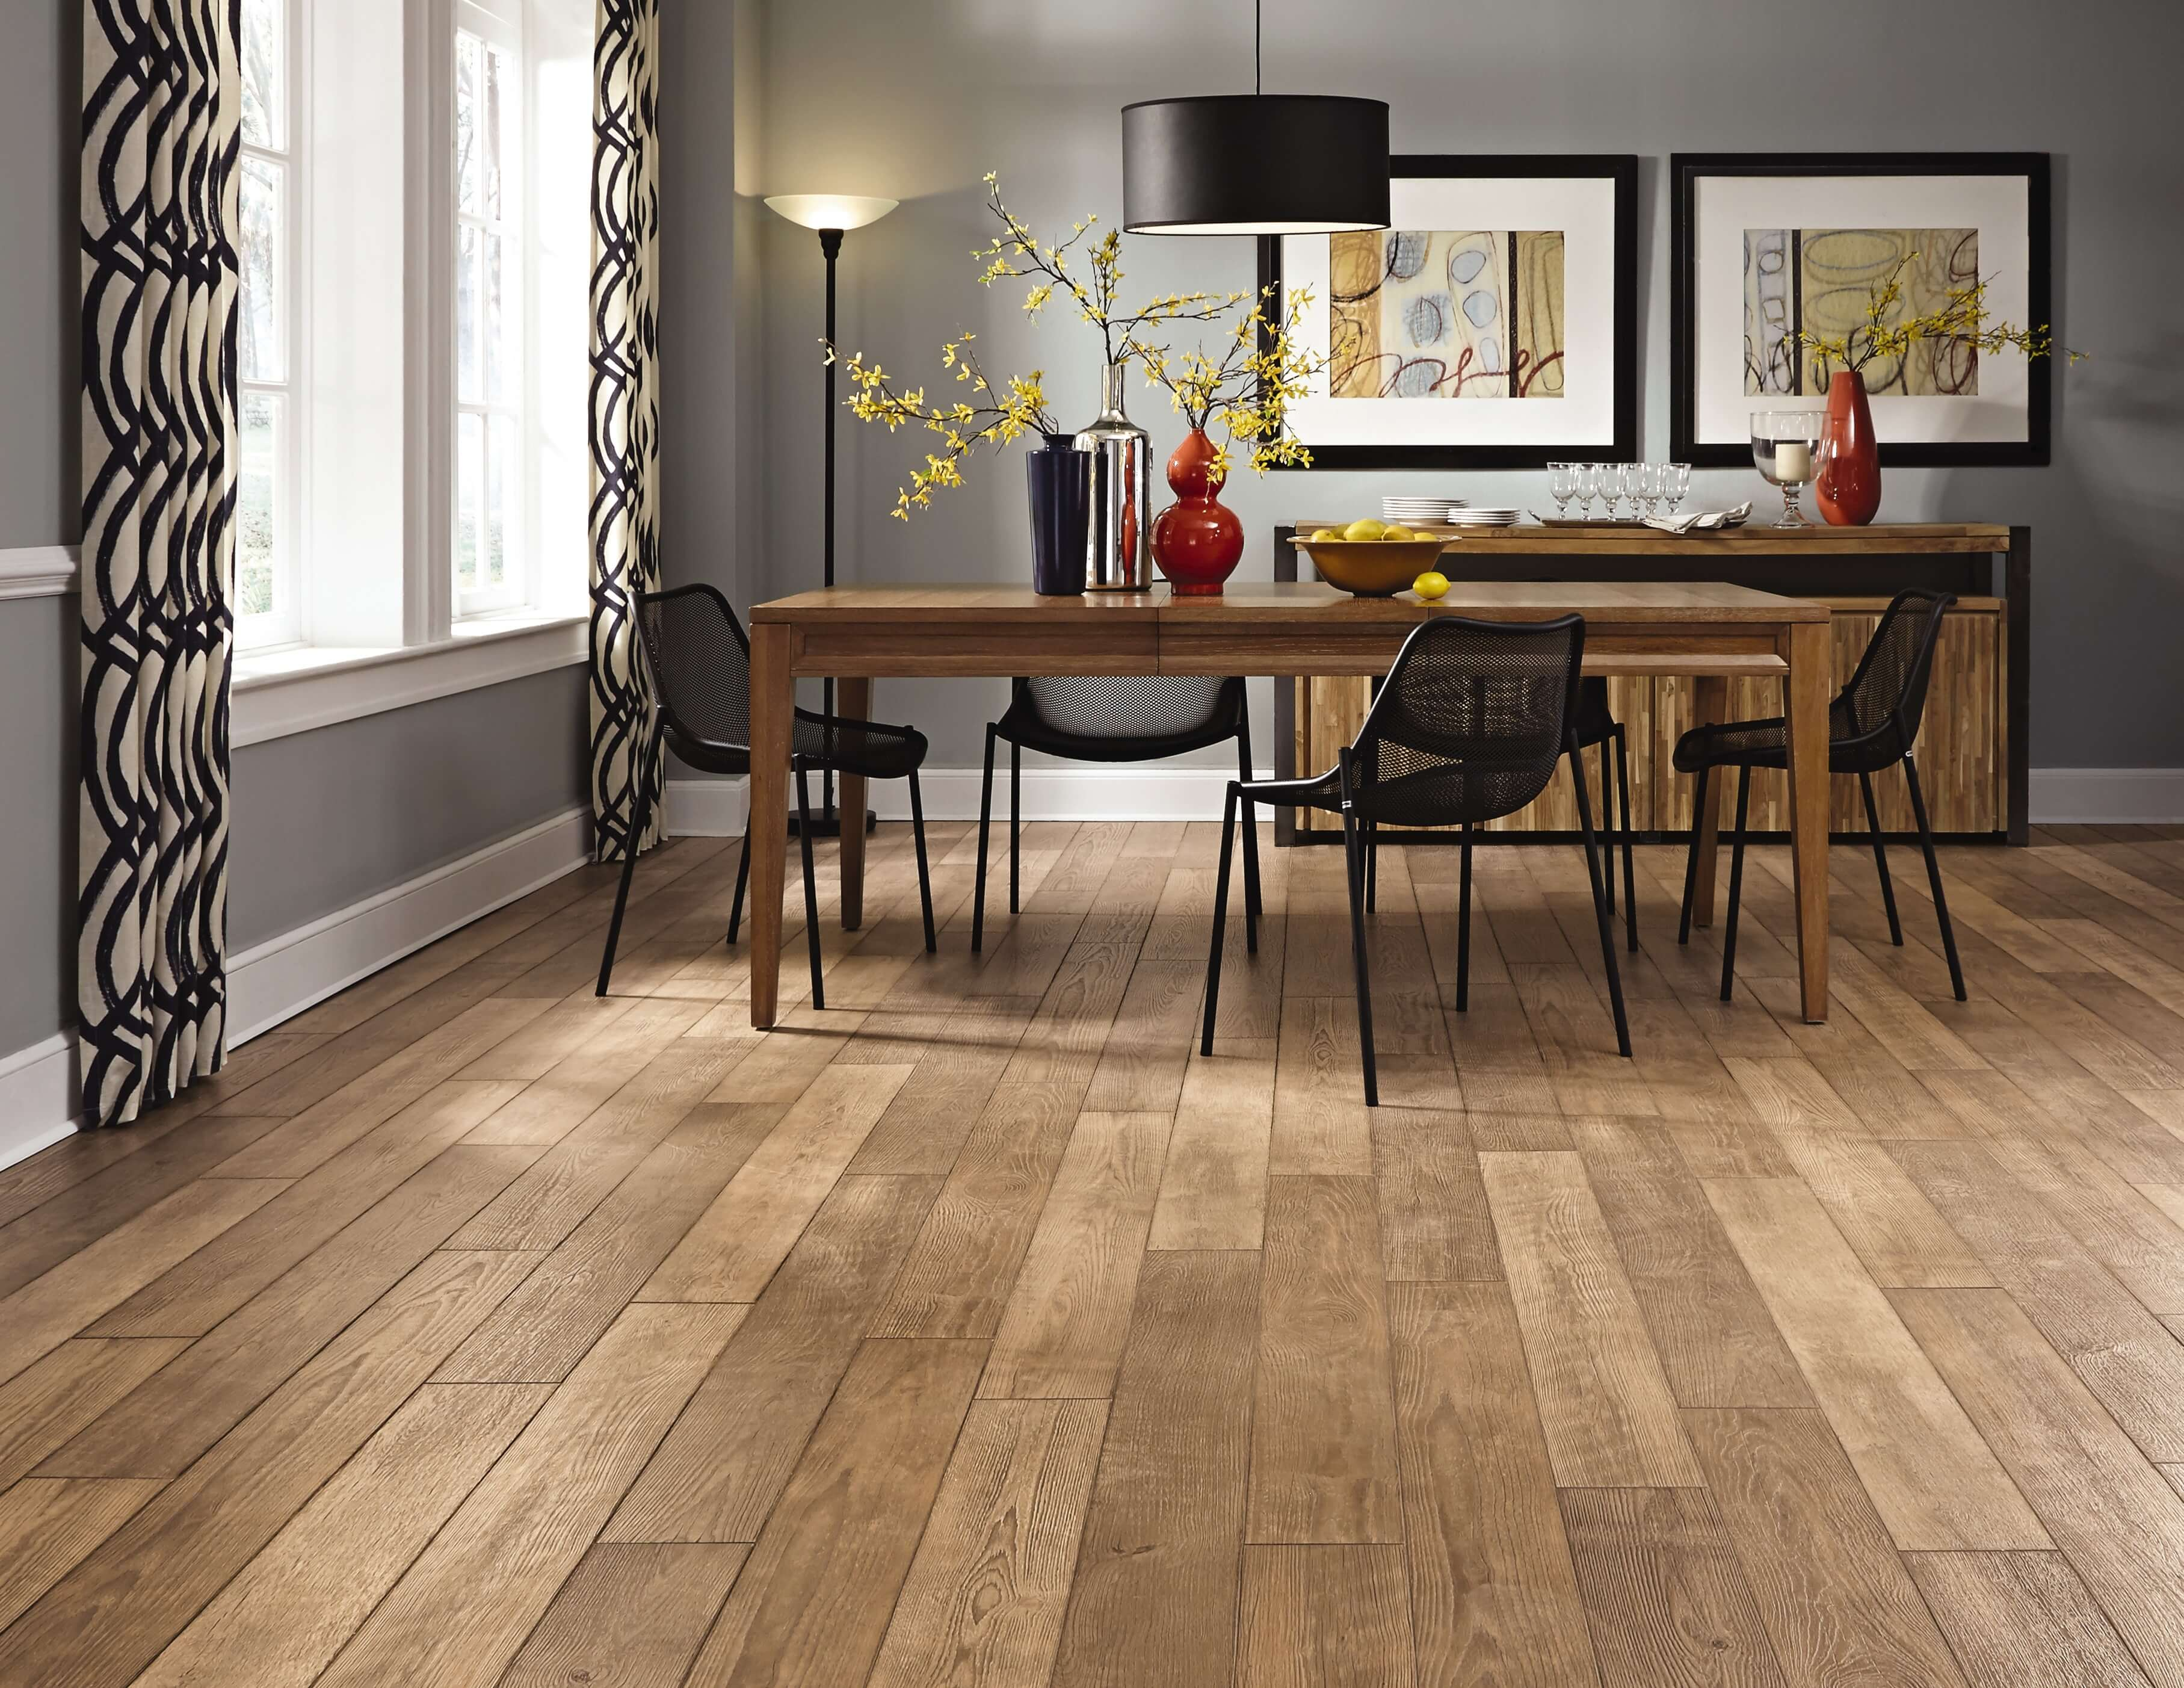 What Should You Know Before Installing Your Laminate Flooring?